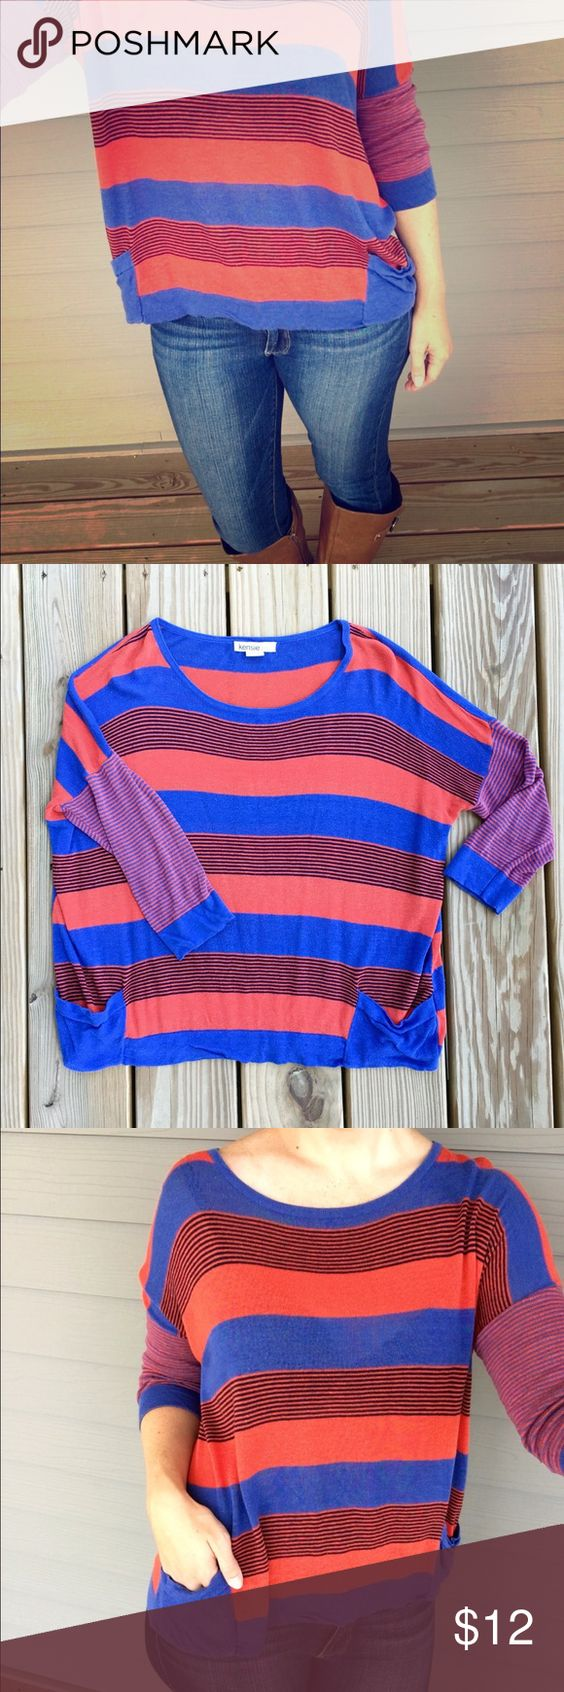 Orange & Blue sweater Super cute bright blue and orange striped slouchy sweater. Has large scoop neck, three quarter length sleeves, slight bat wing arms, and POCKETS! Great for fall!🍁💙🏈 Kensie Sweaters Crew & Scoop Necks